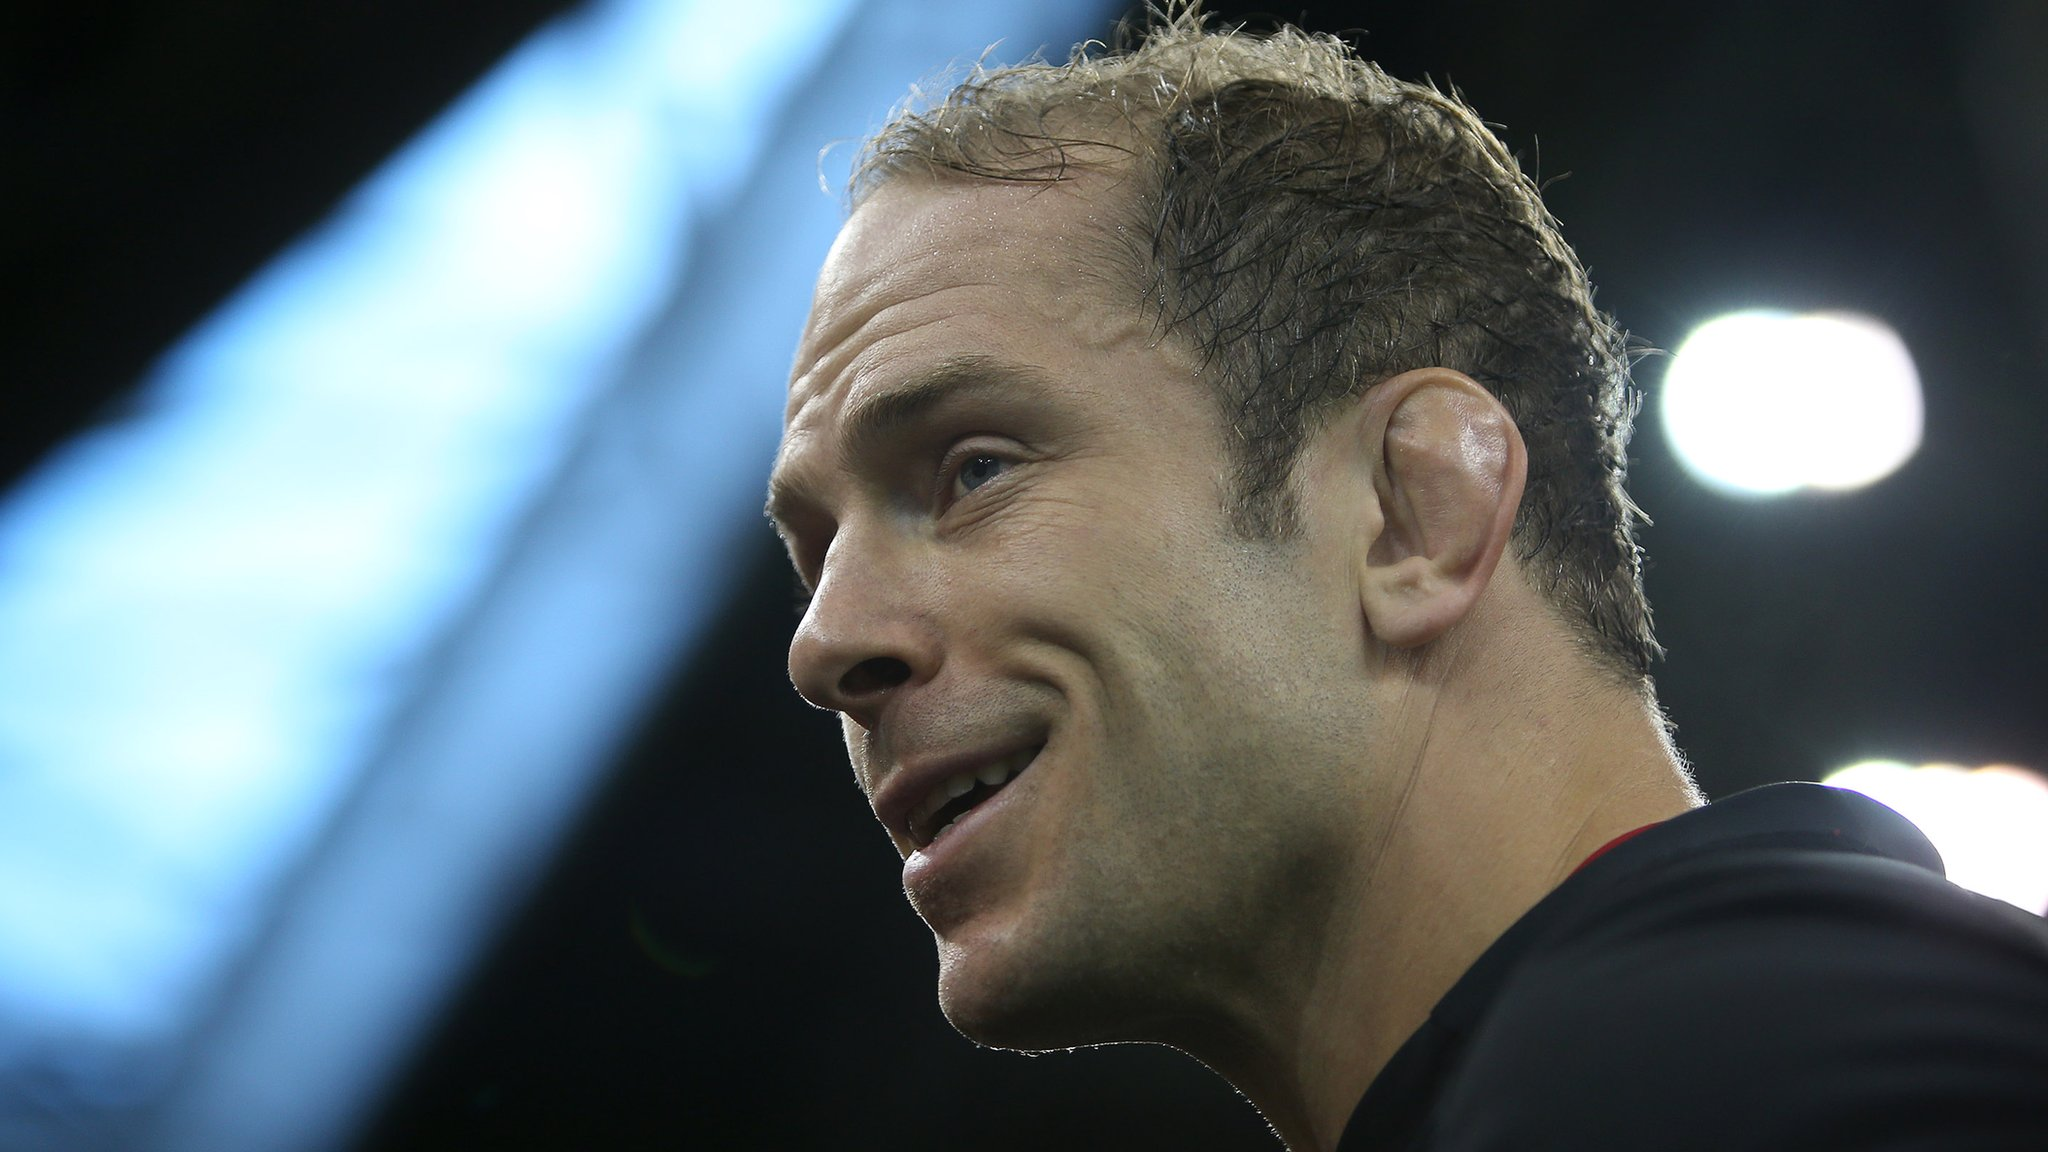 Alun Wyn Jones: Wales have 'momentum' going into Australia game